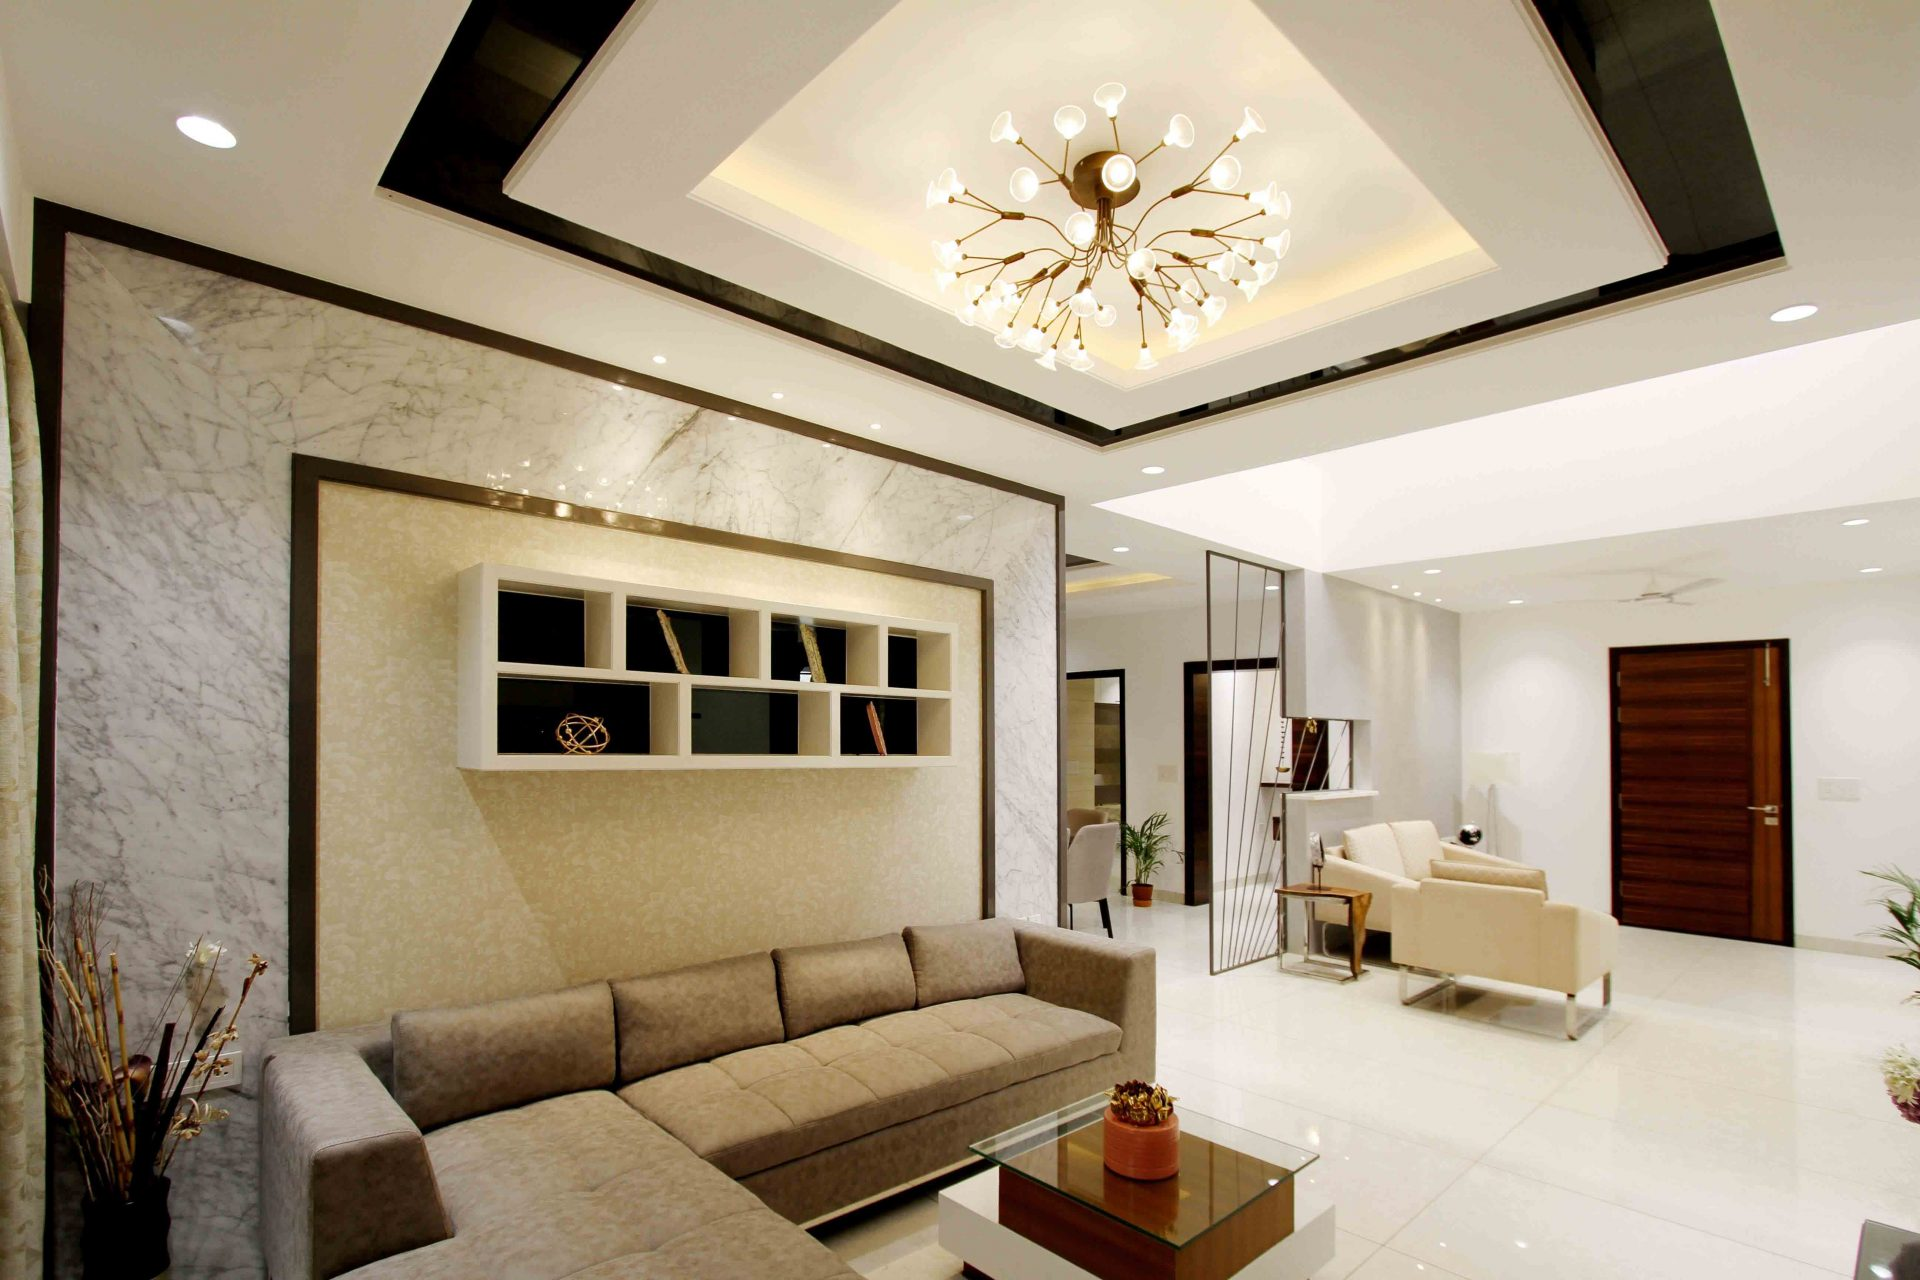 Floor Tile with glossy look in living room